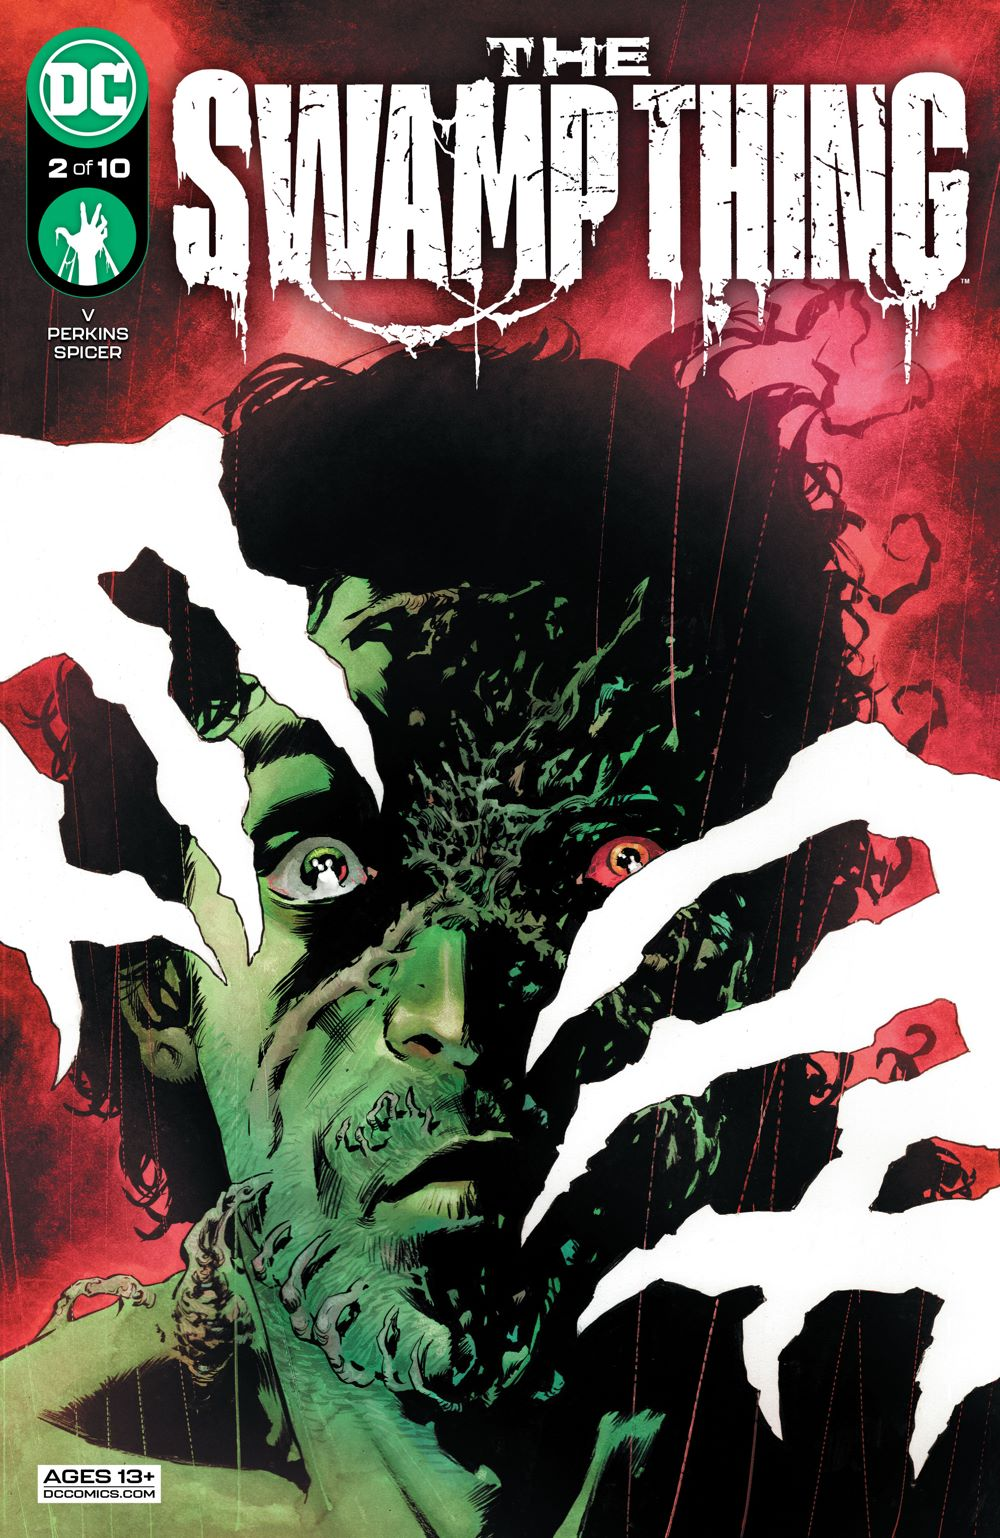 The-Swamp-Thing-2-1_6067cdd70d3f48.78862163 ComicList Previews: THE SWAMP THING #2 (OF 10)